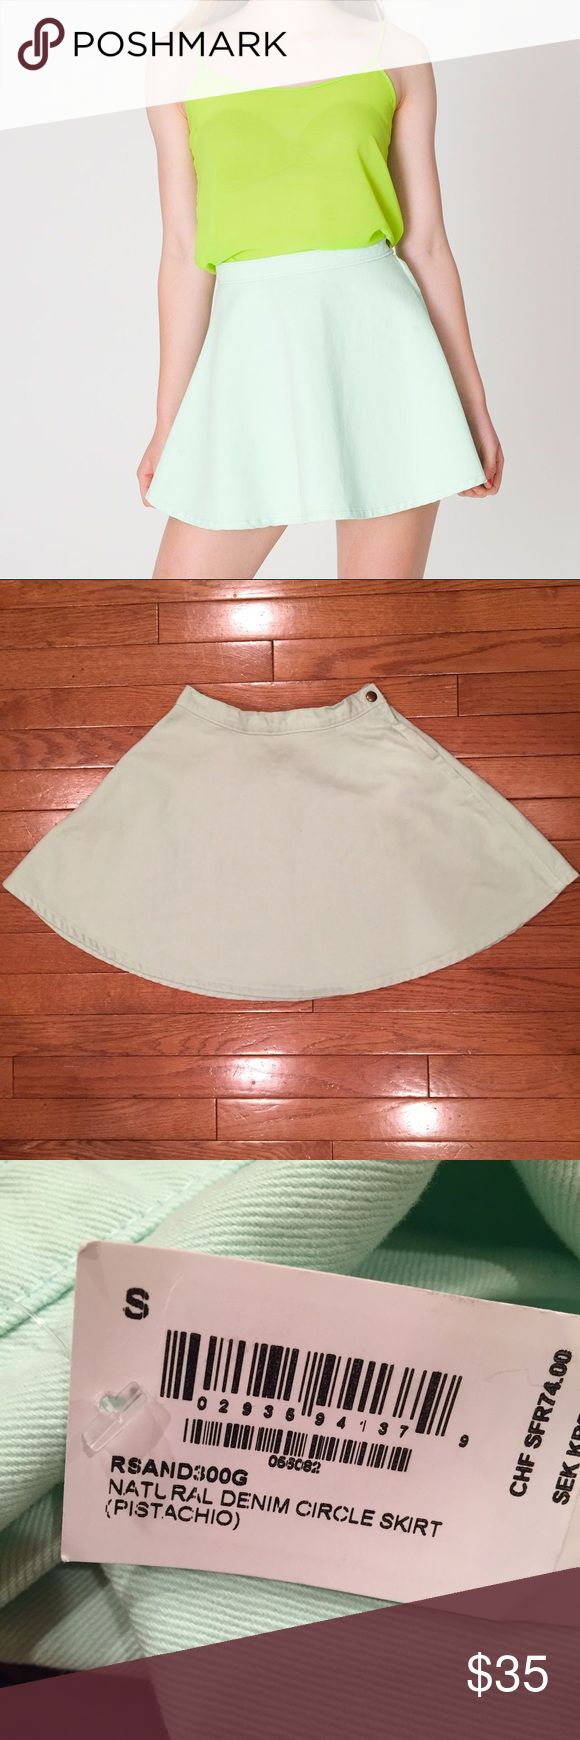 American Apparel Mint Green Denim Circle Skirt! American Apparel natural denim circle skirt in Pistachio! Brand new with tags!! Size small! American Apparel Skirts Circle & Skater